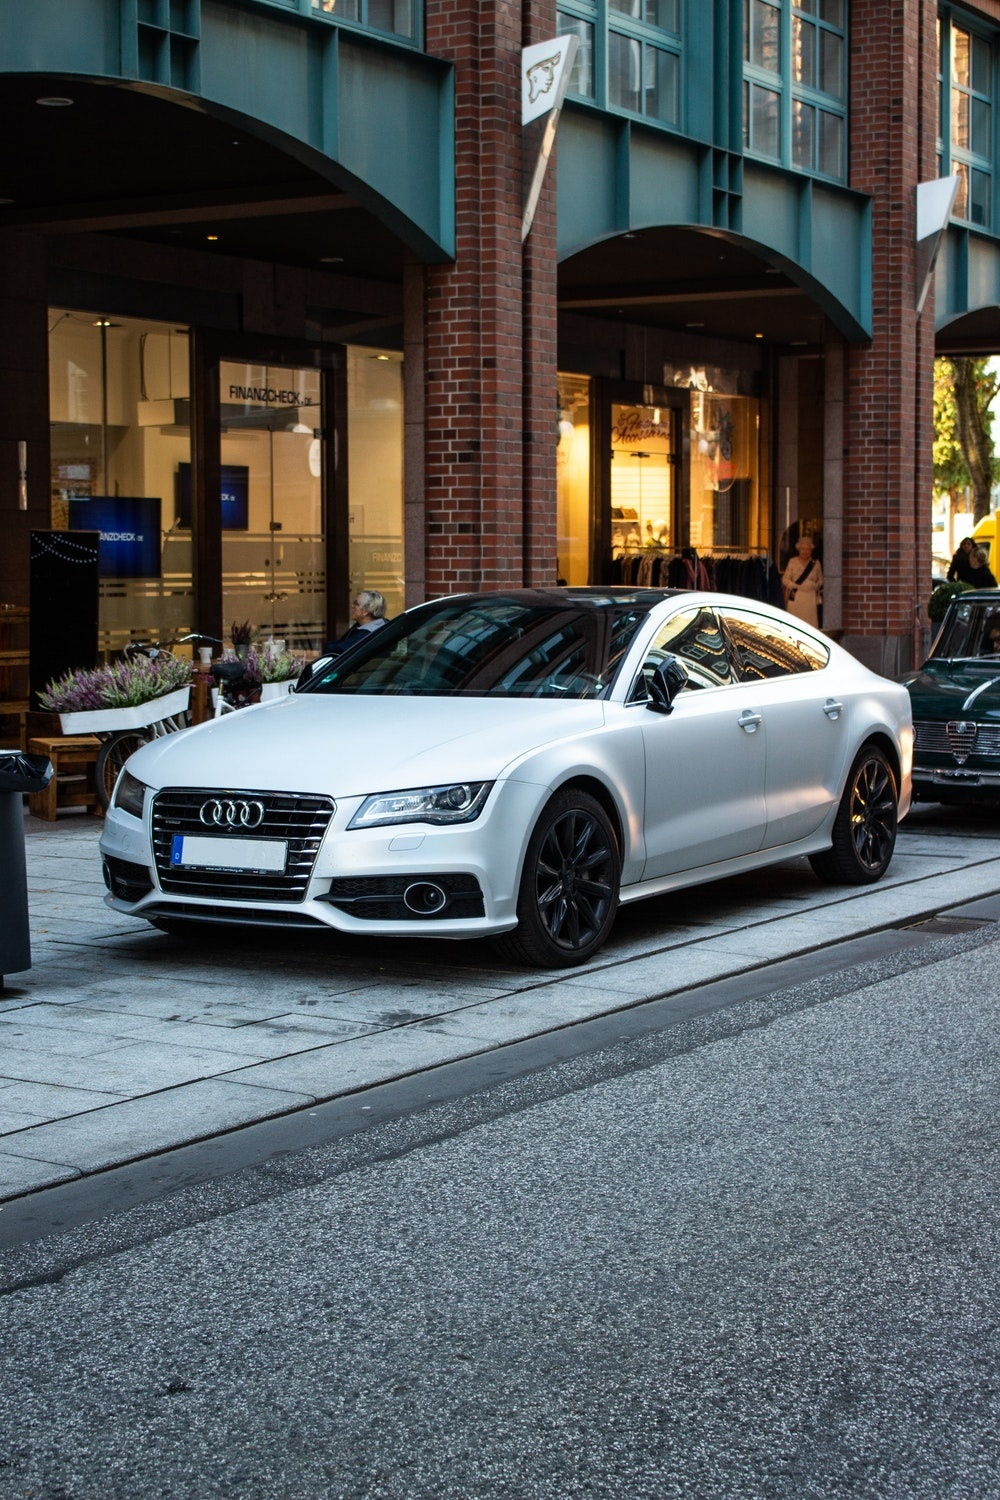 Audi A7 Modified Best Of 500 Audi Pictures Hd Download Free Images On Unsplash-2382 Of Luxury Audi A7 Modified